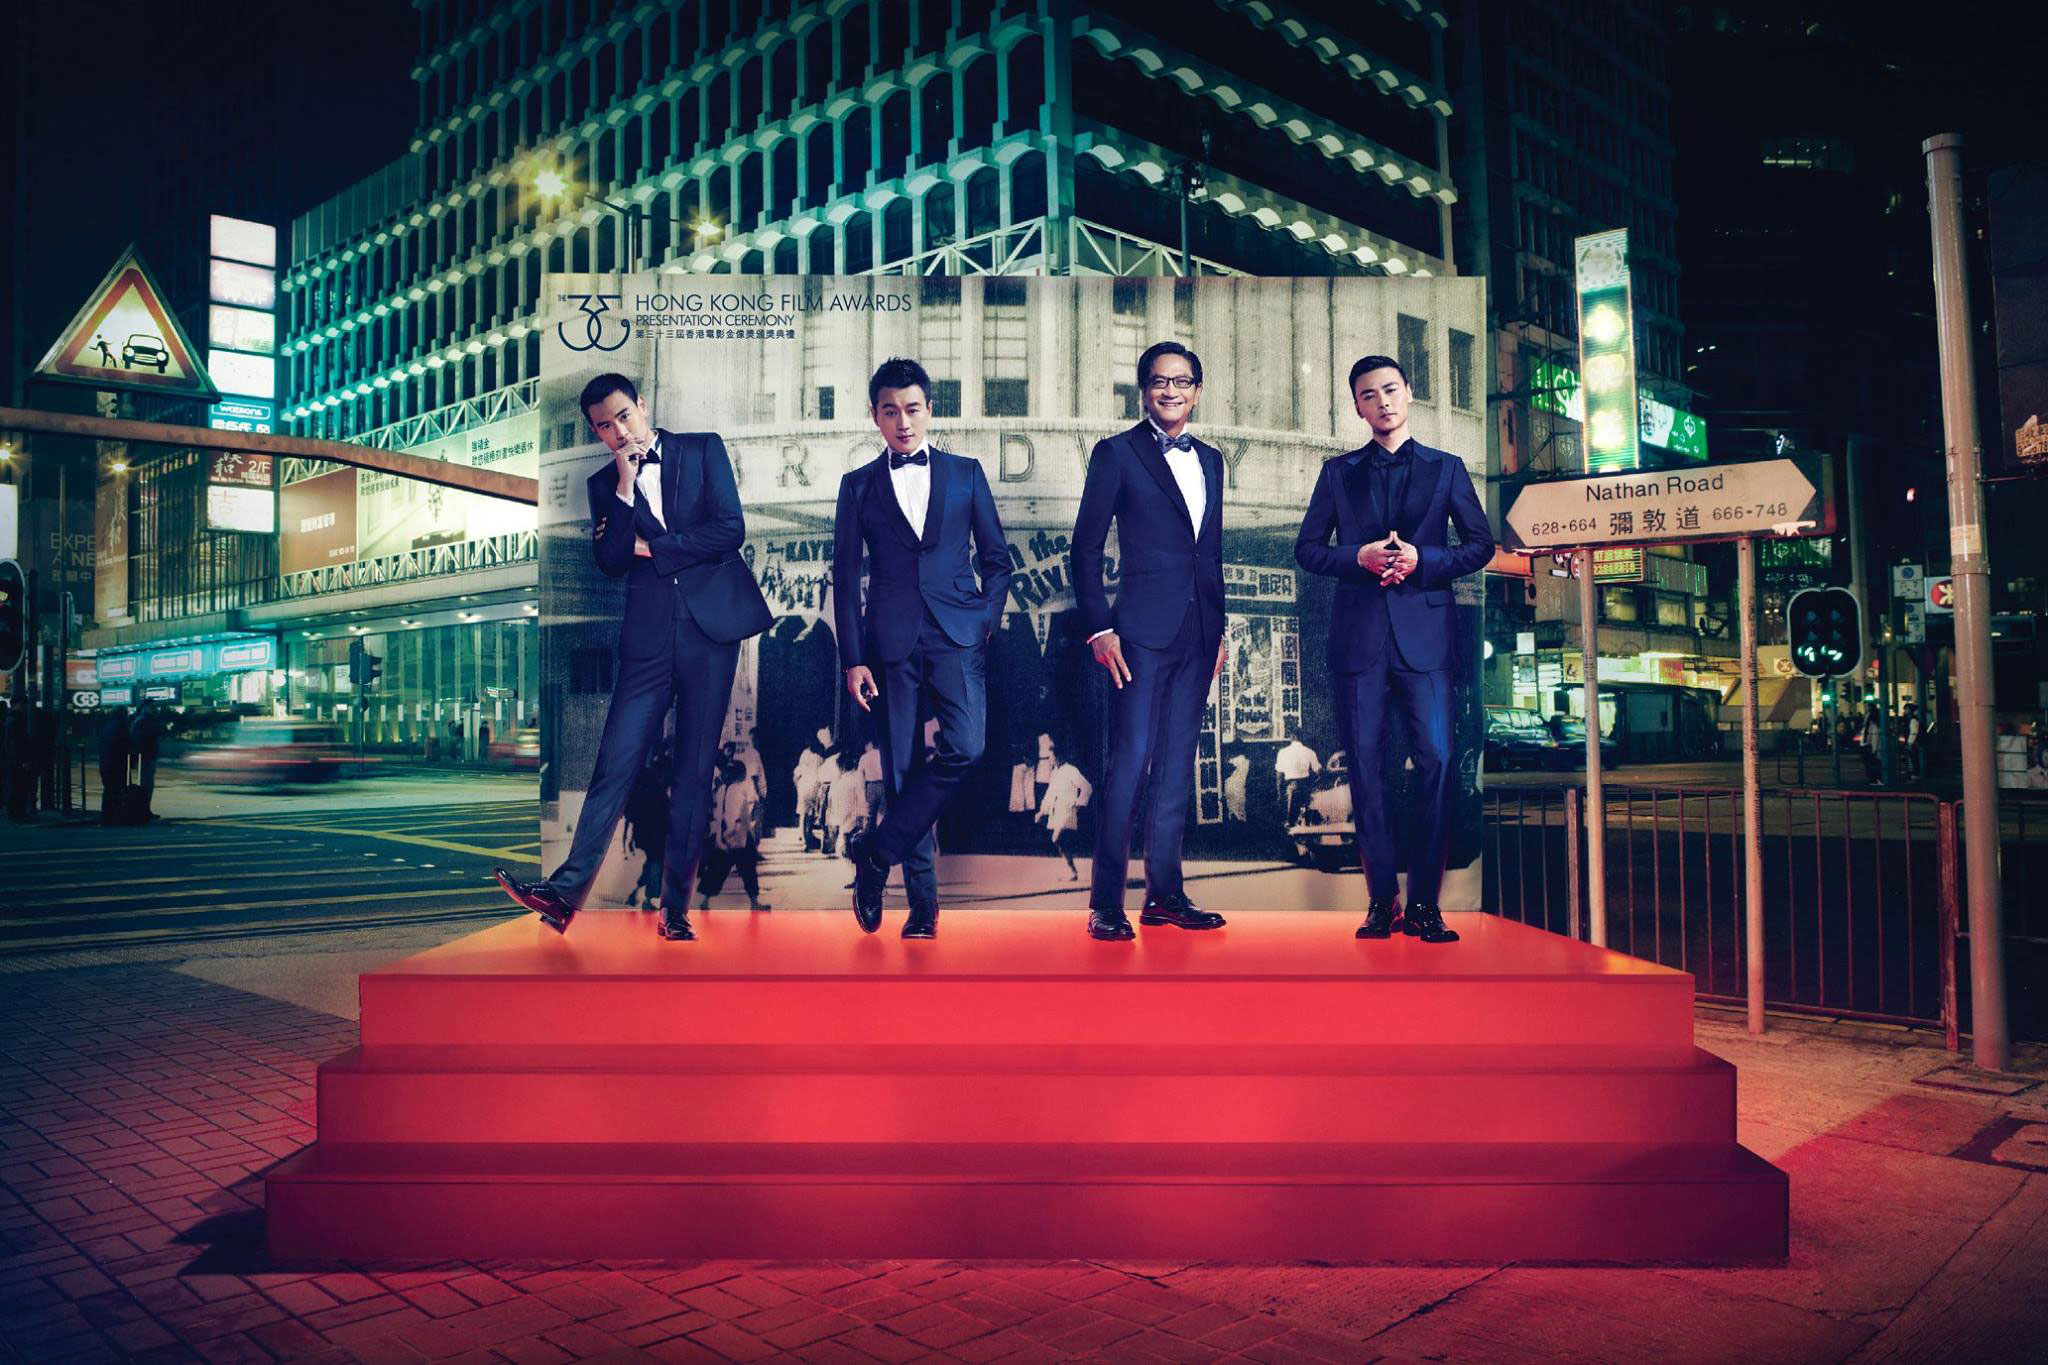 Hong Kong Film Awards 2014 supporting actor nominees